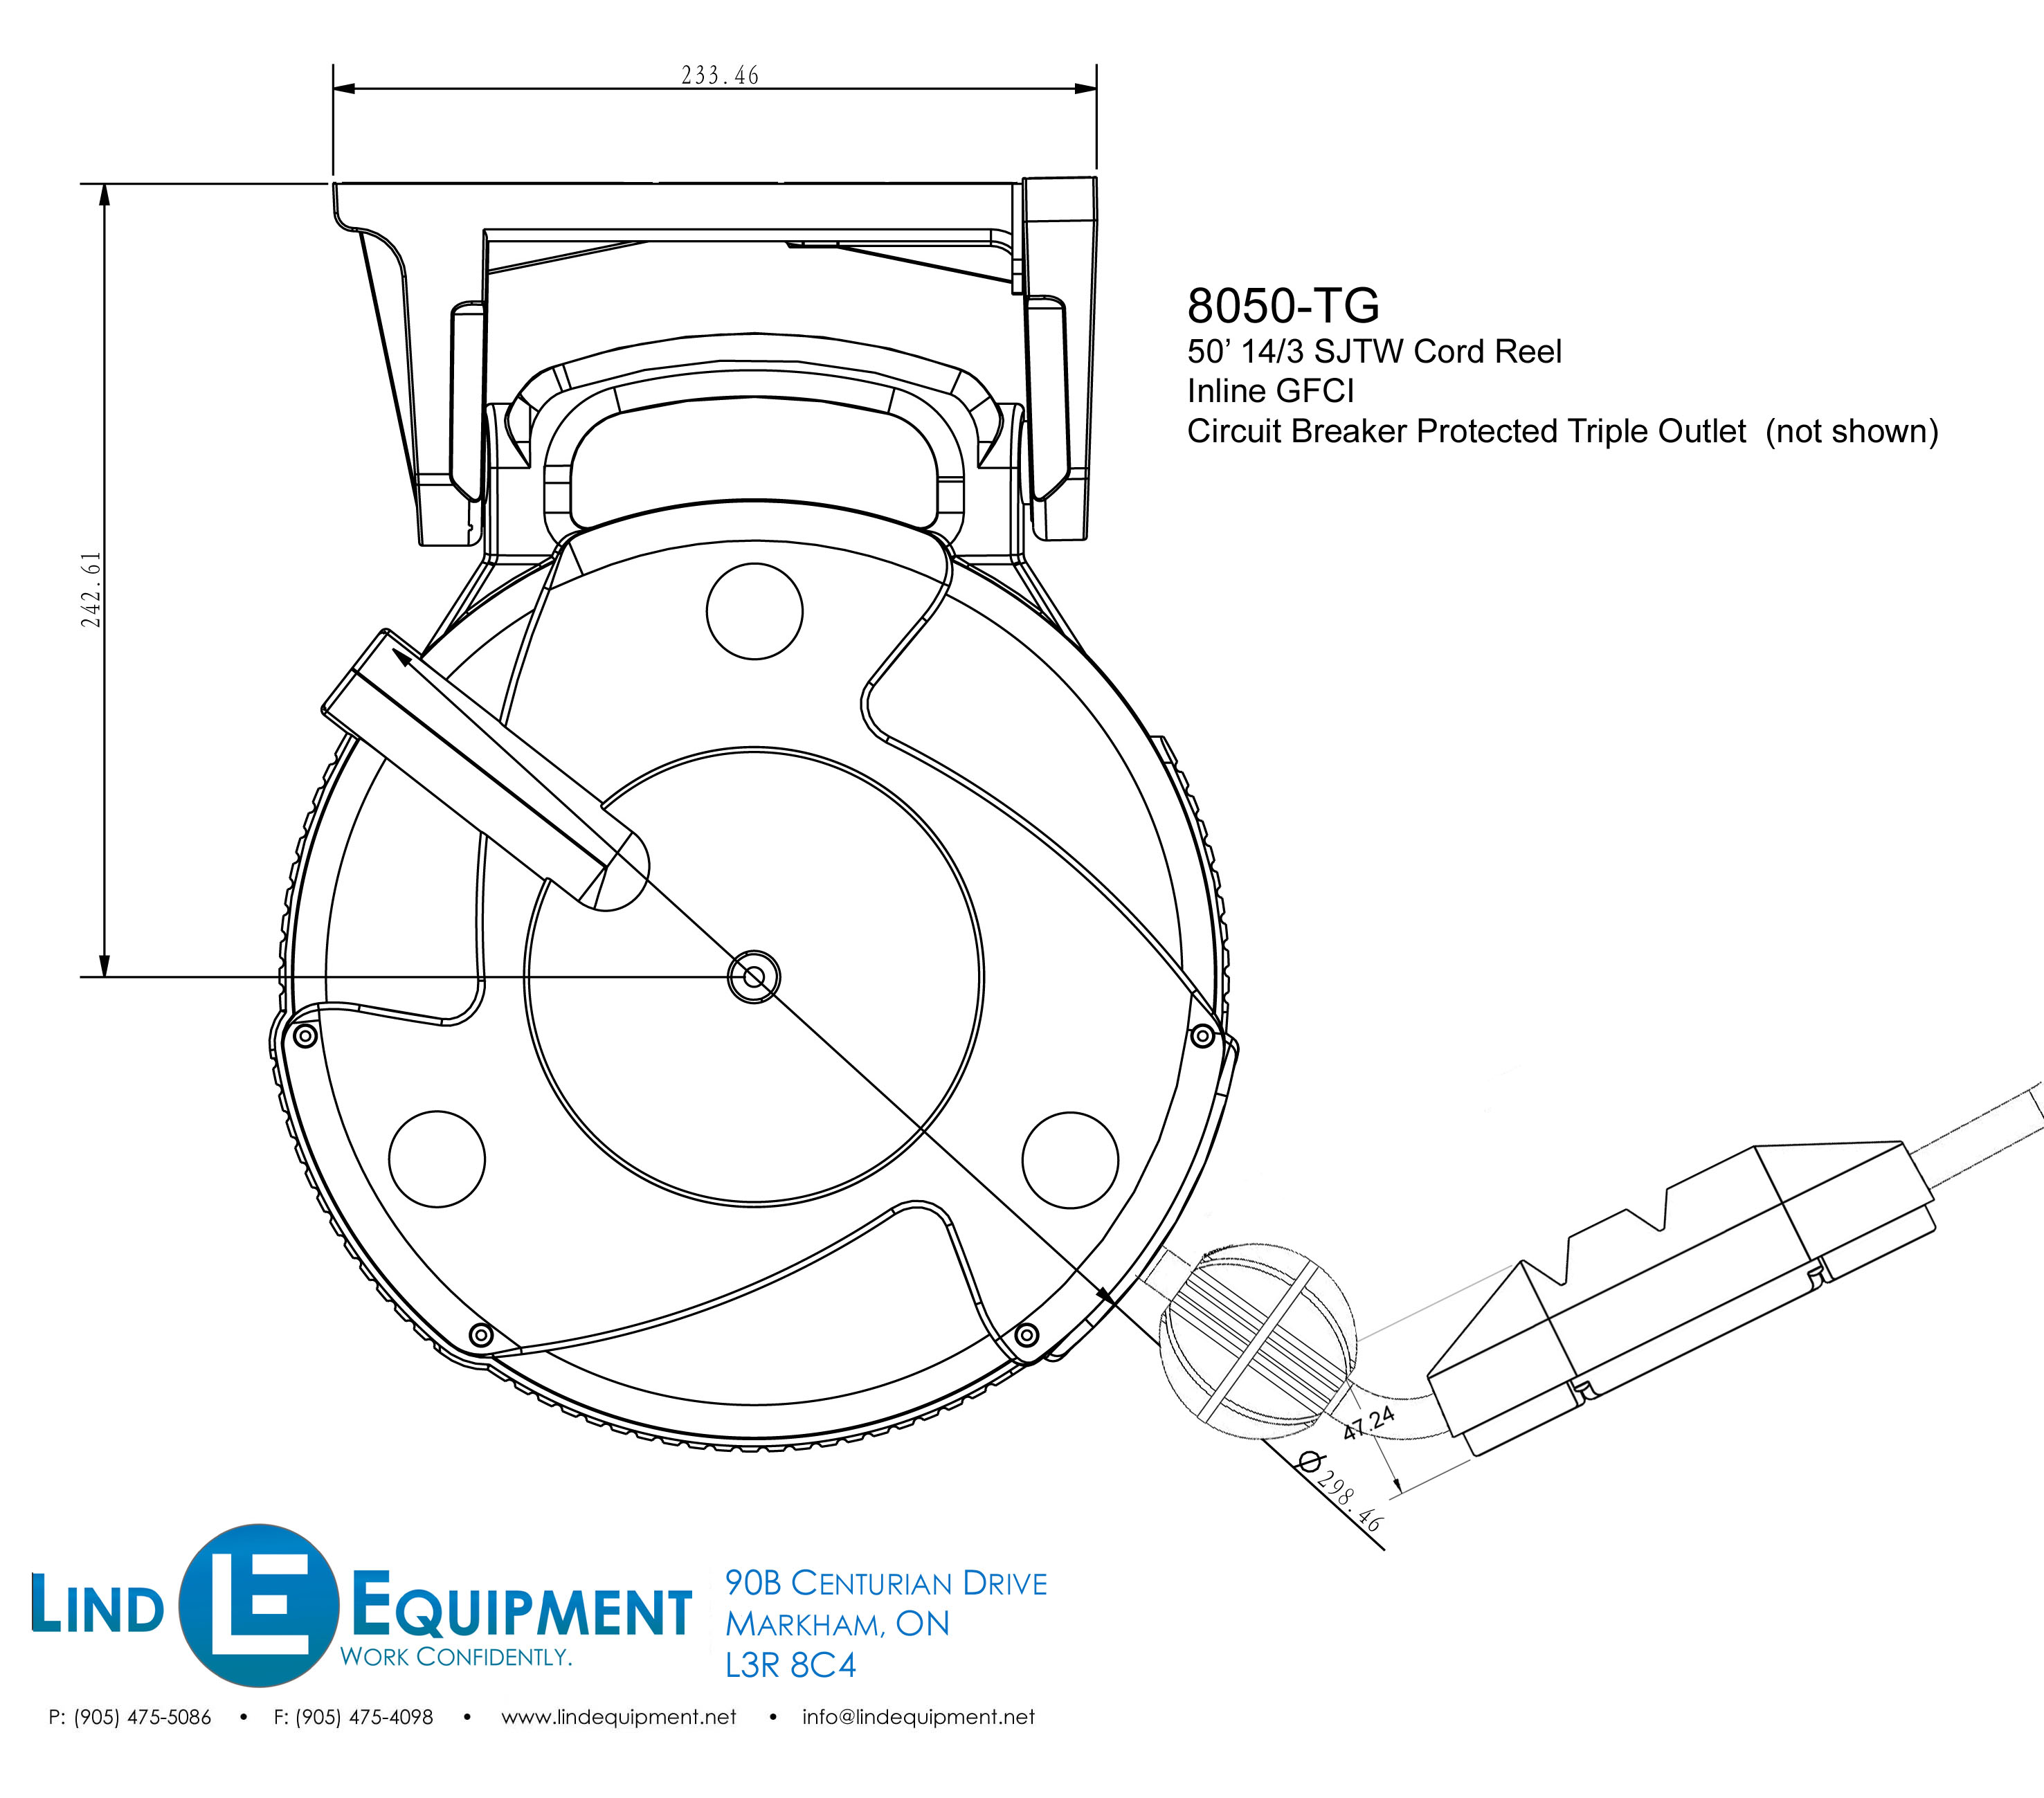 Tg Line Drawing on Electric Fan Motor Replacement Repalcement Parts And Diagram